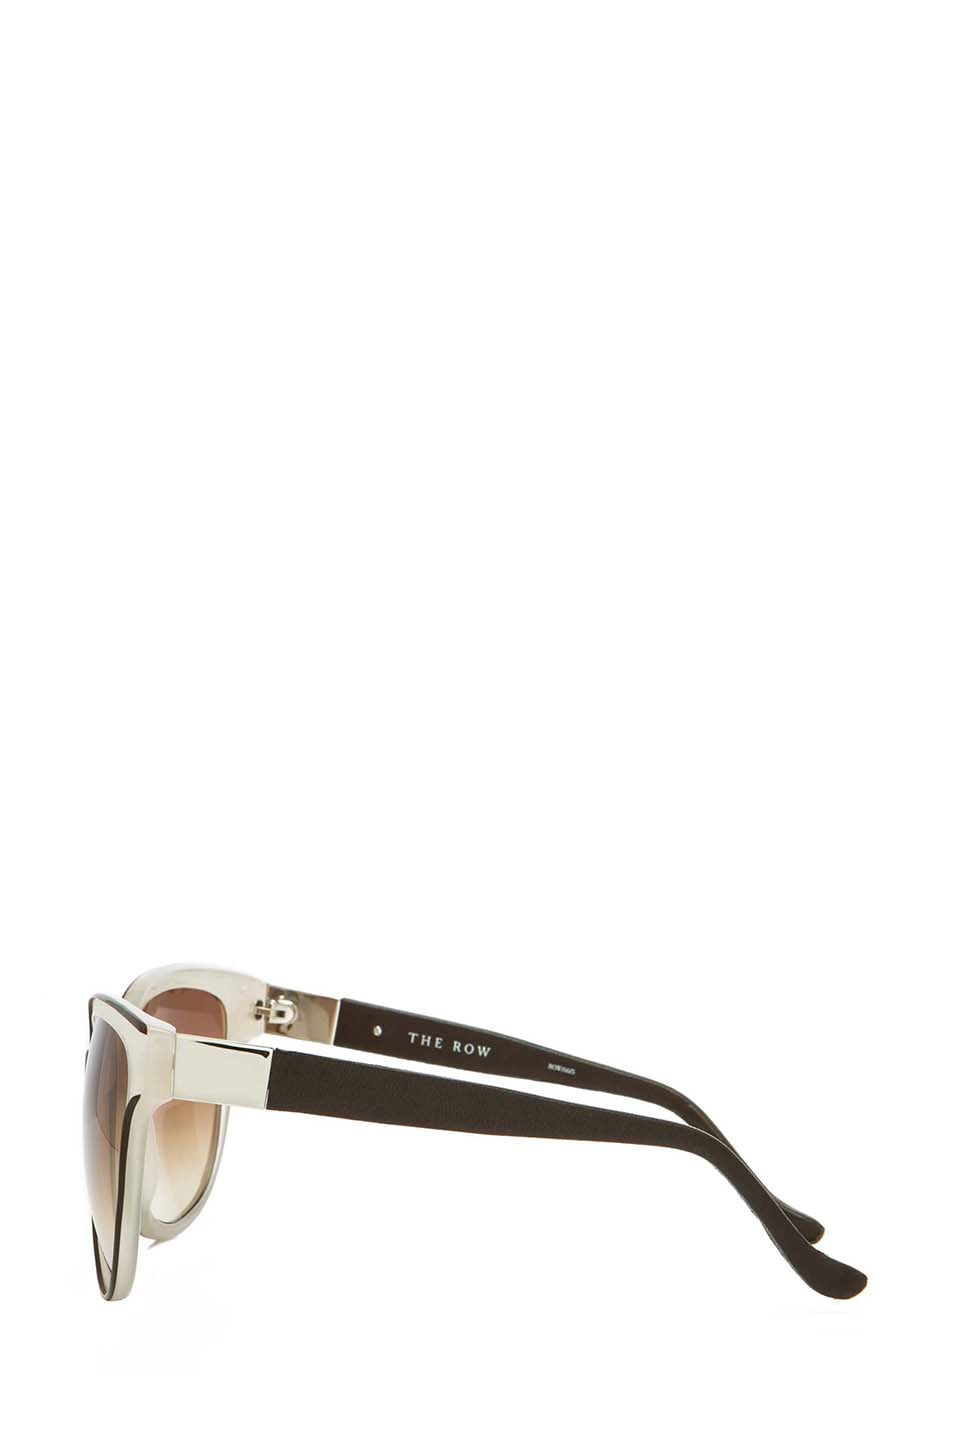 Image 3 of The Row Oversized Sunglasses in Iron & Blush